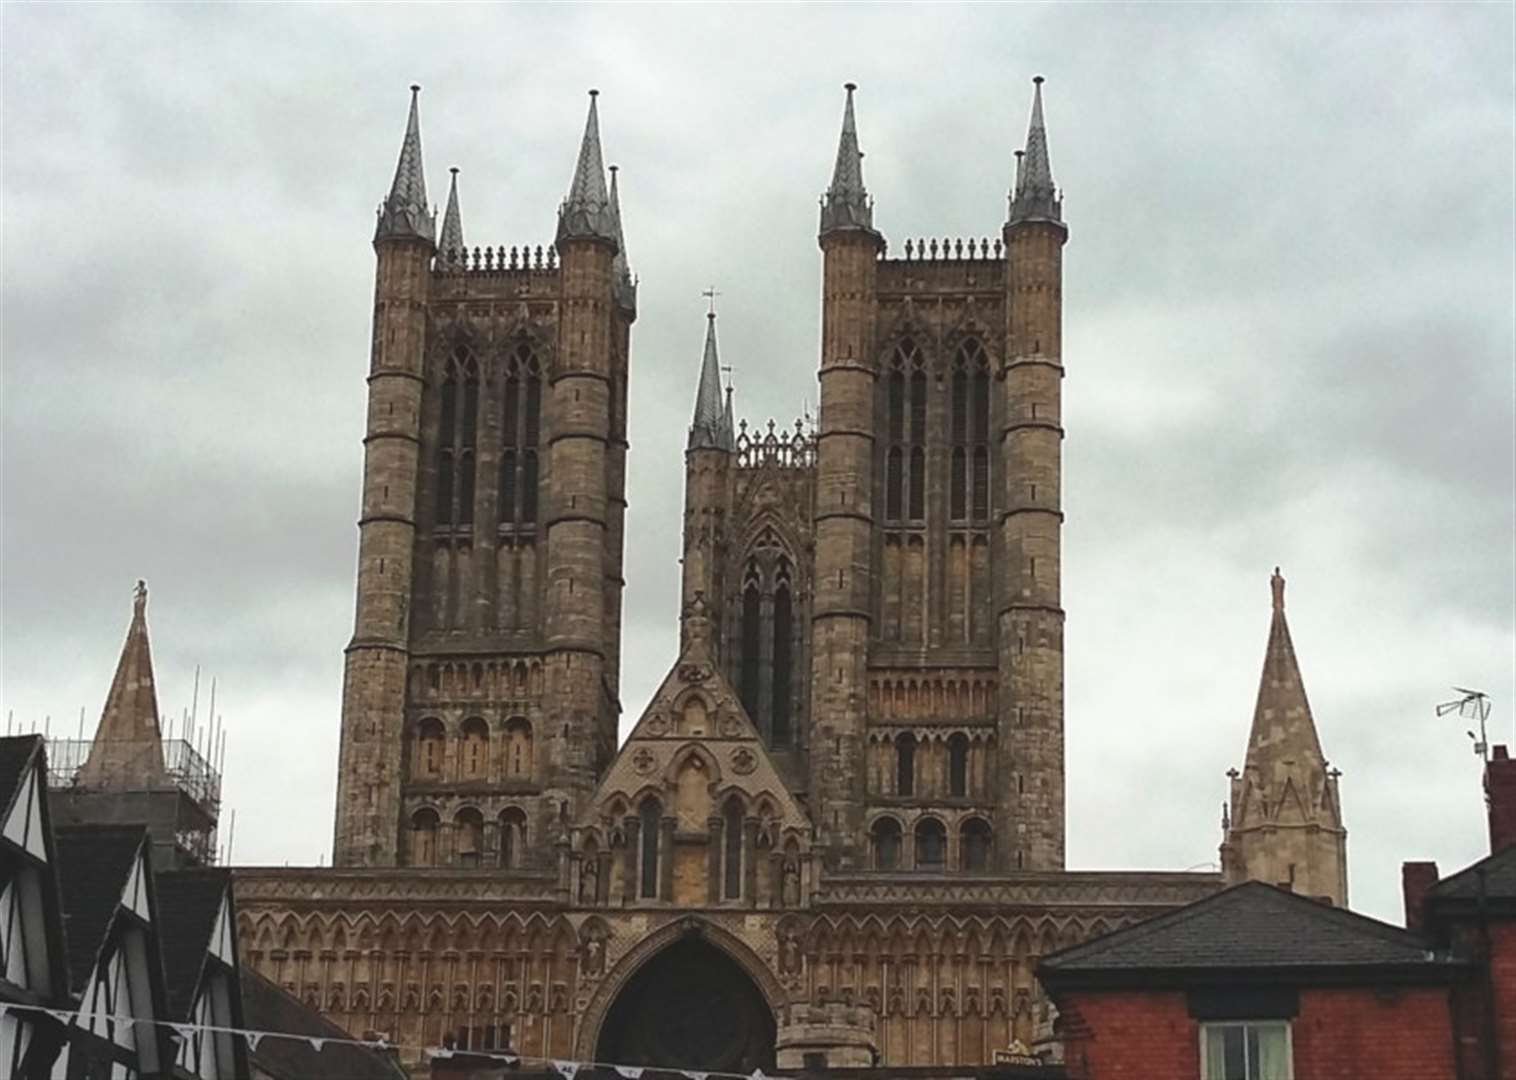 Lincolnshire hospitals trust to host carol service at Lincoln cathedral